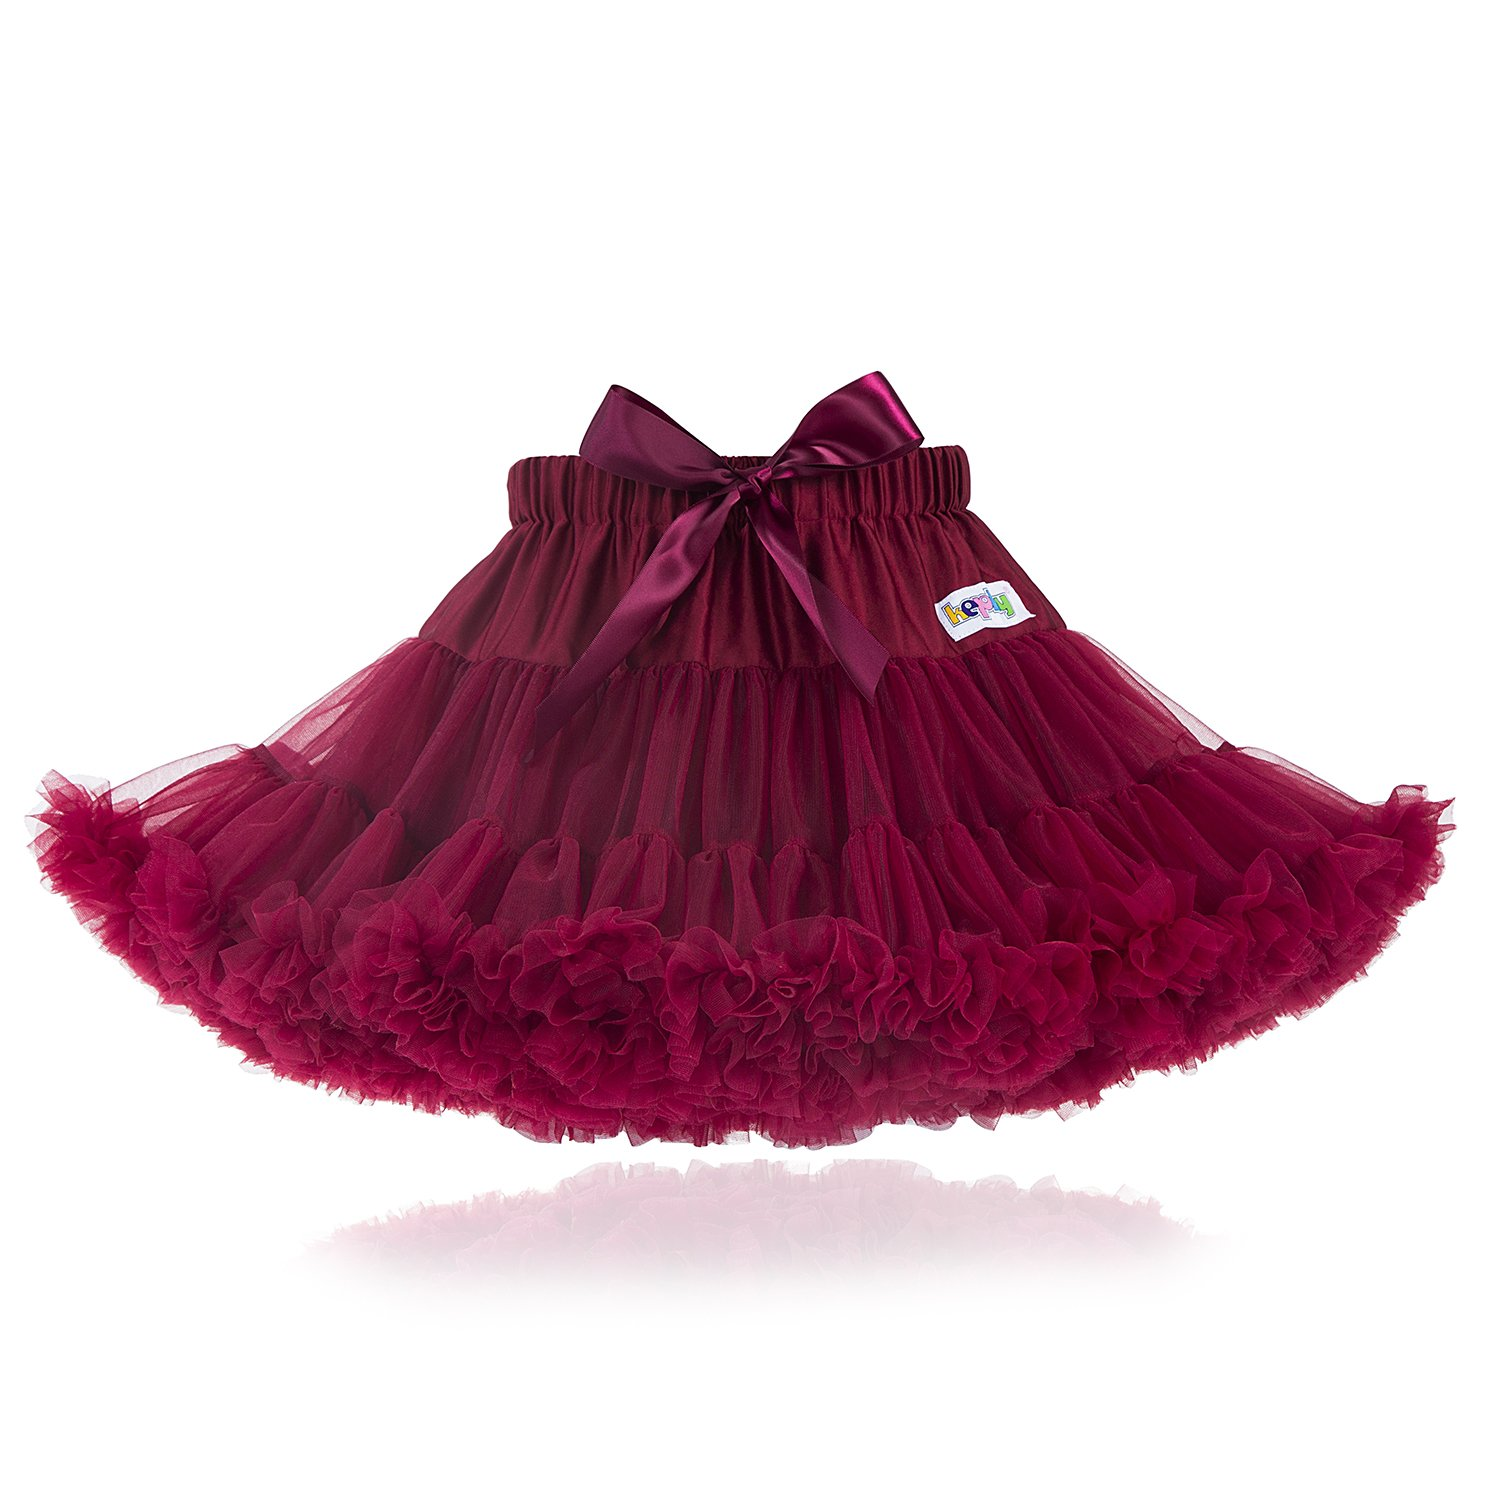 kephy Baby Extra Fluffy Princess Tutu Skirt Little Girl Pleated Tulle Skirt Birthday Dance Pettiskirt (0-10T)